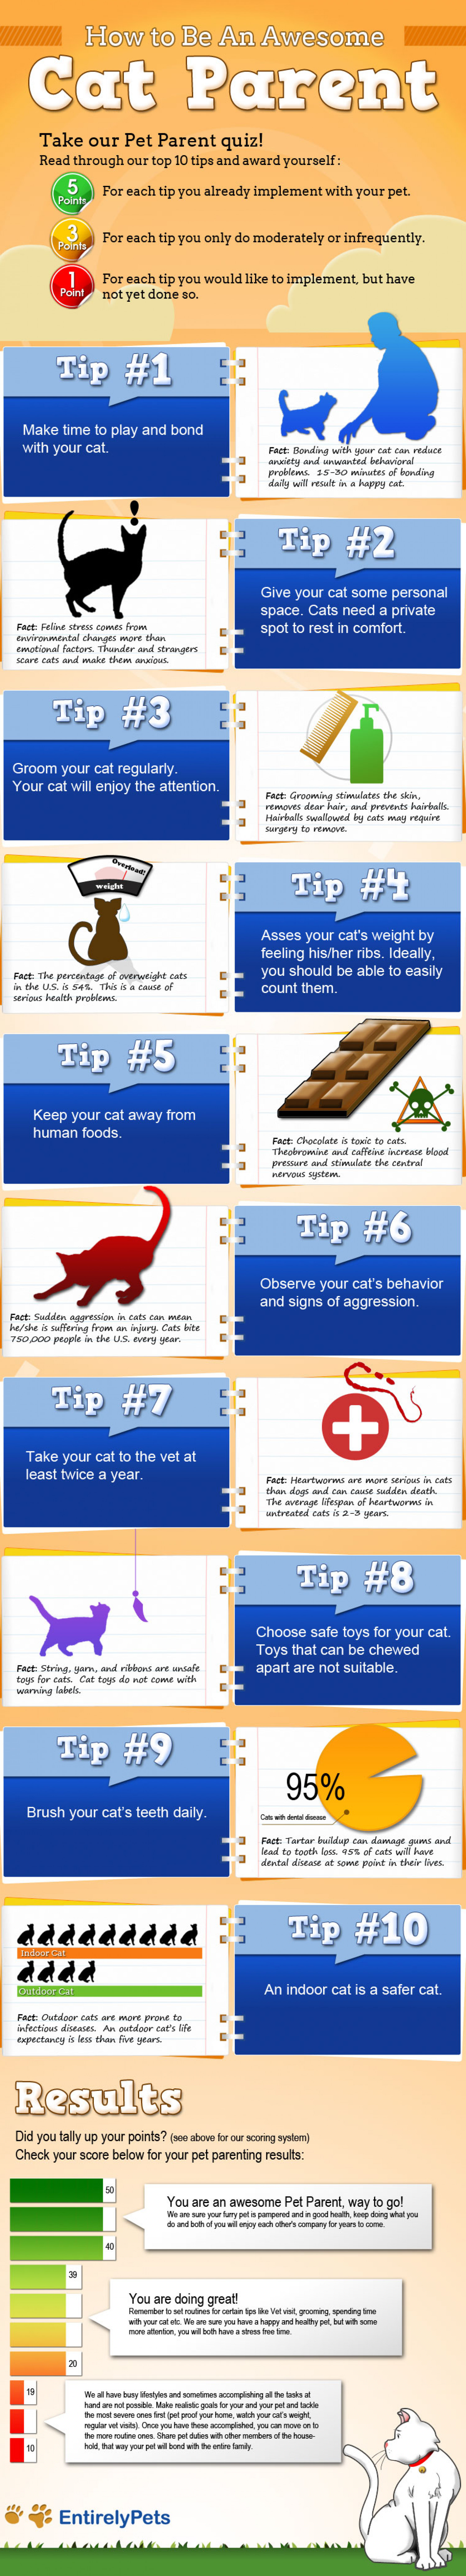 How to Be An Awesome Cat Parent Infographic